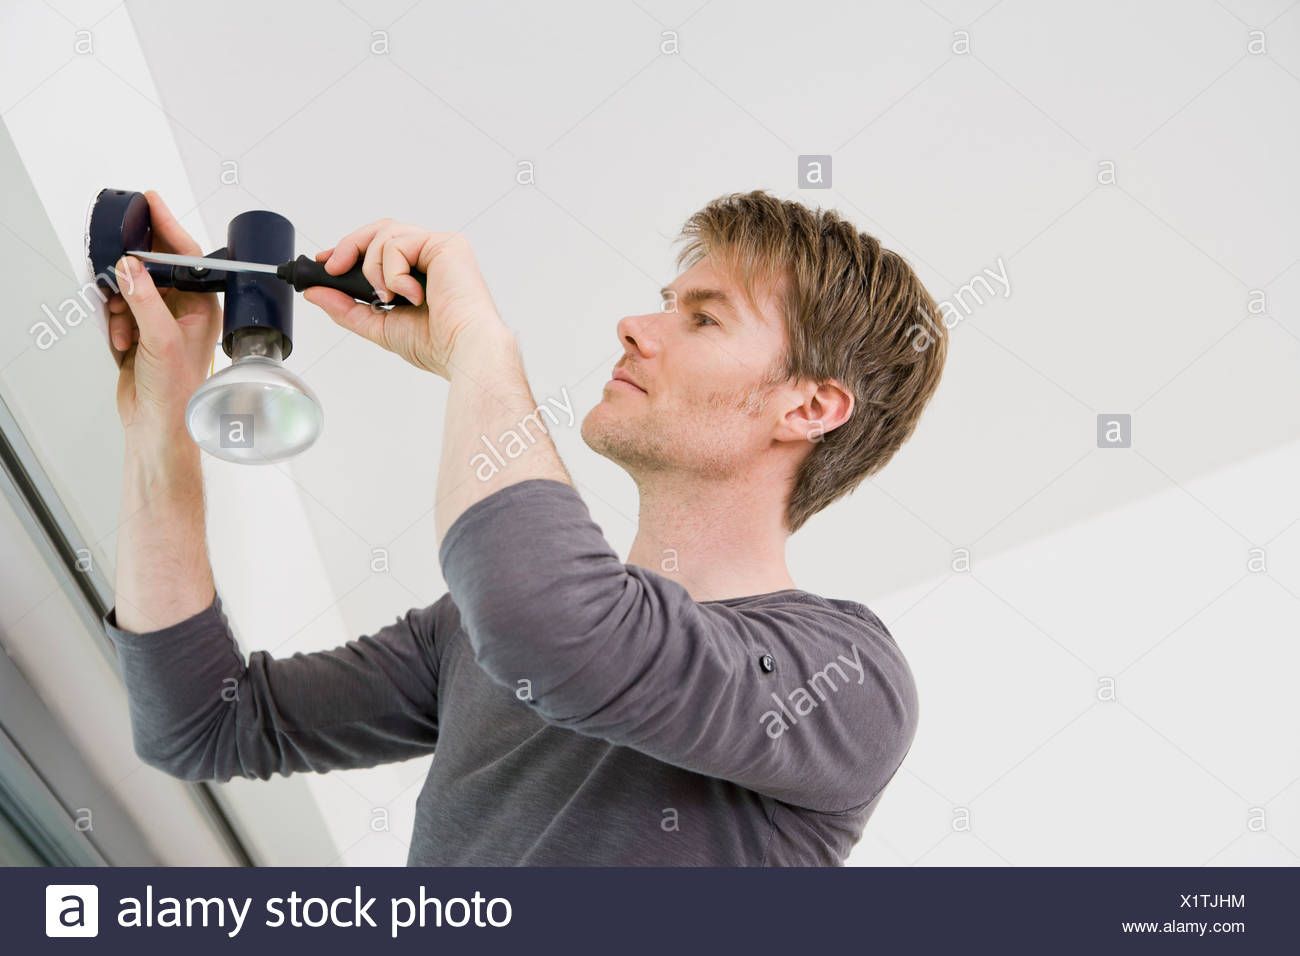 Man Installing Light Fixture In House Stock Photo 276522000 Alamy Basic Household Wiring